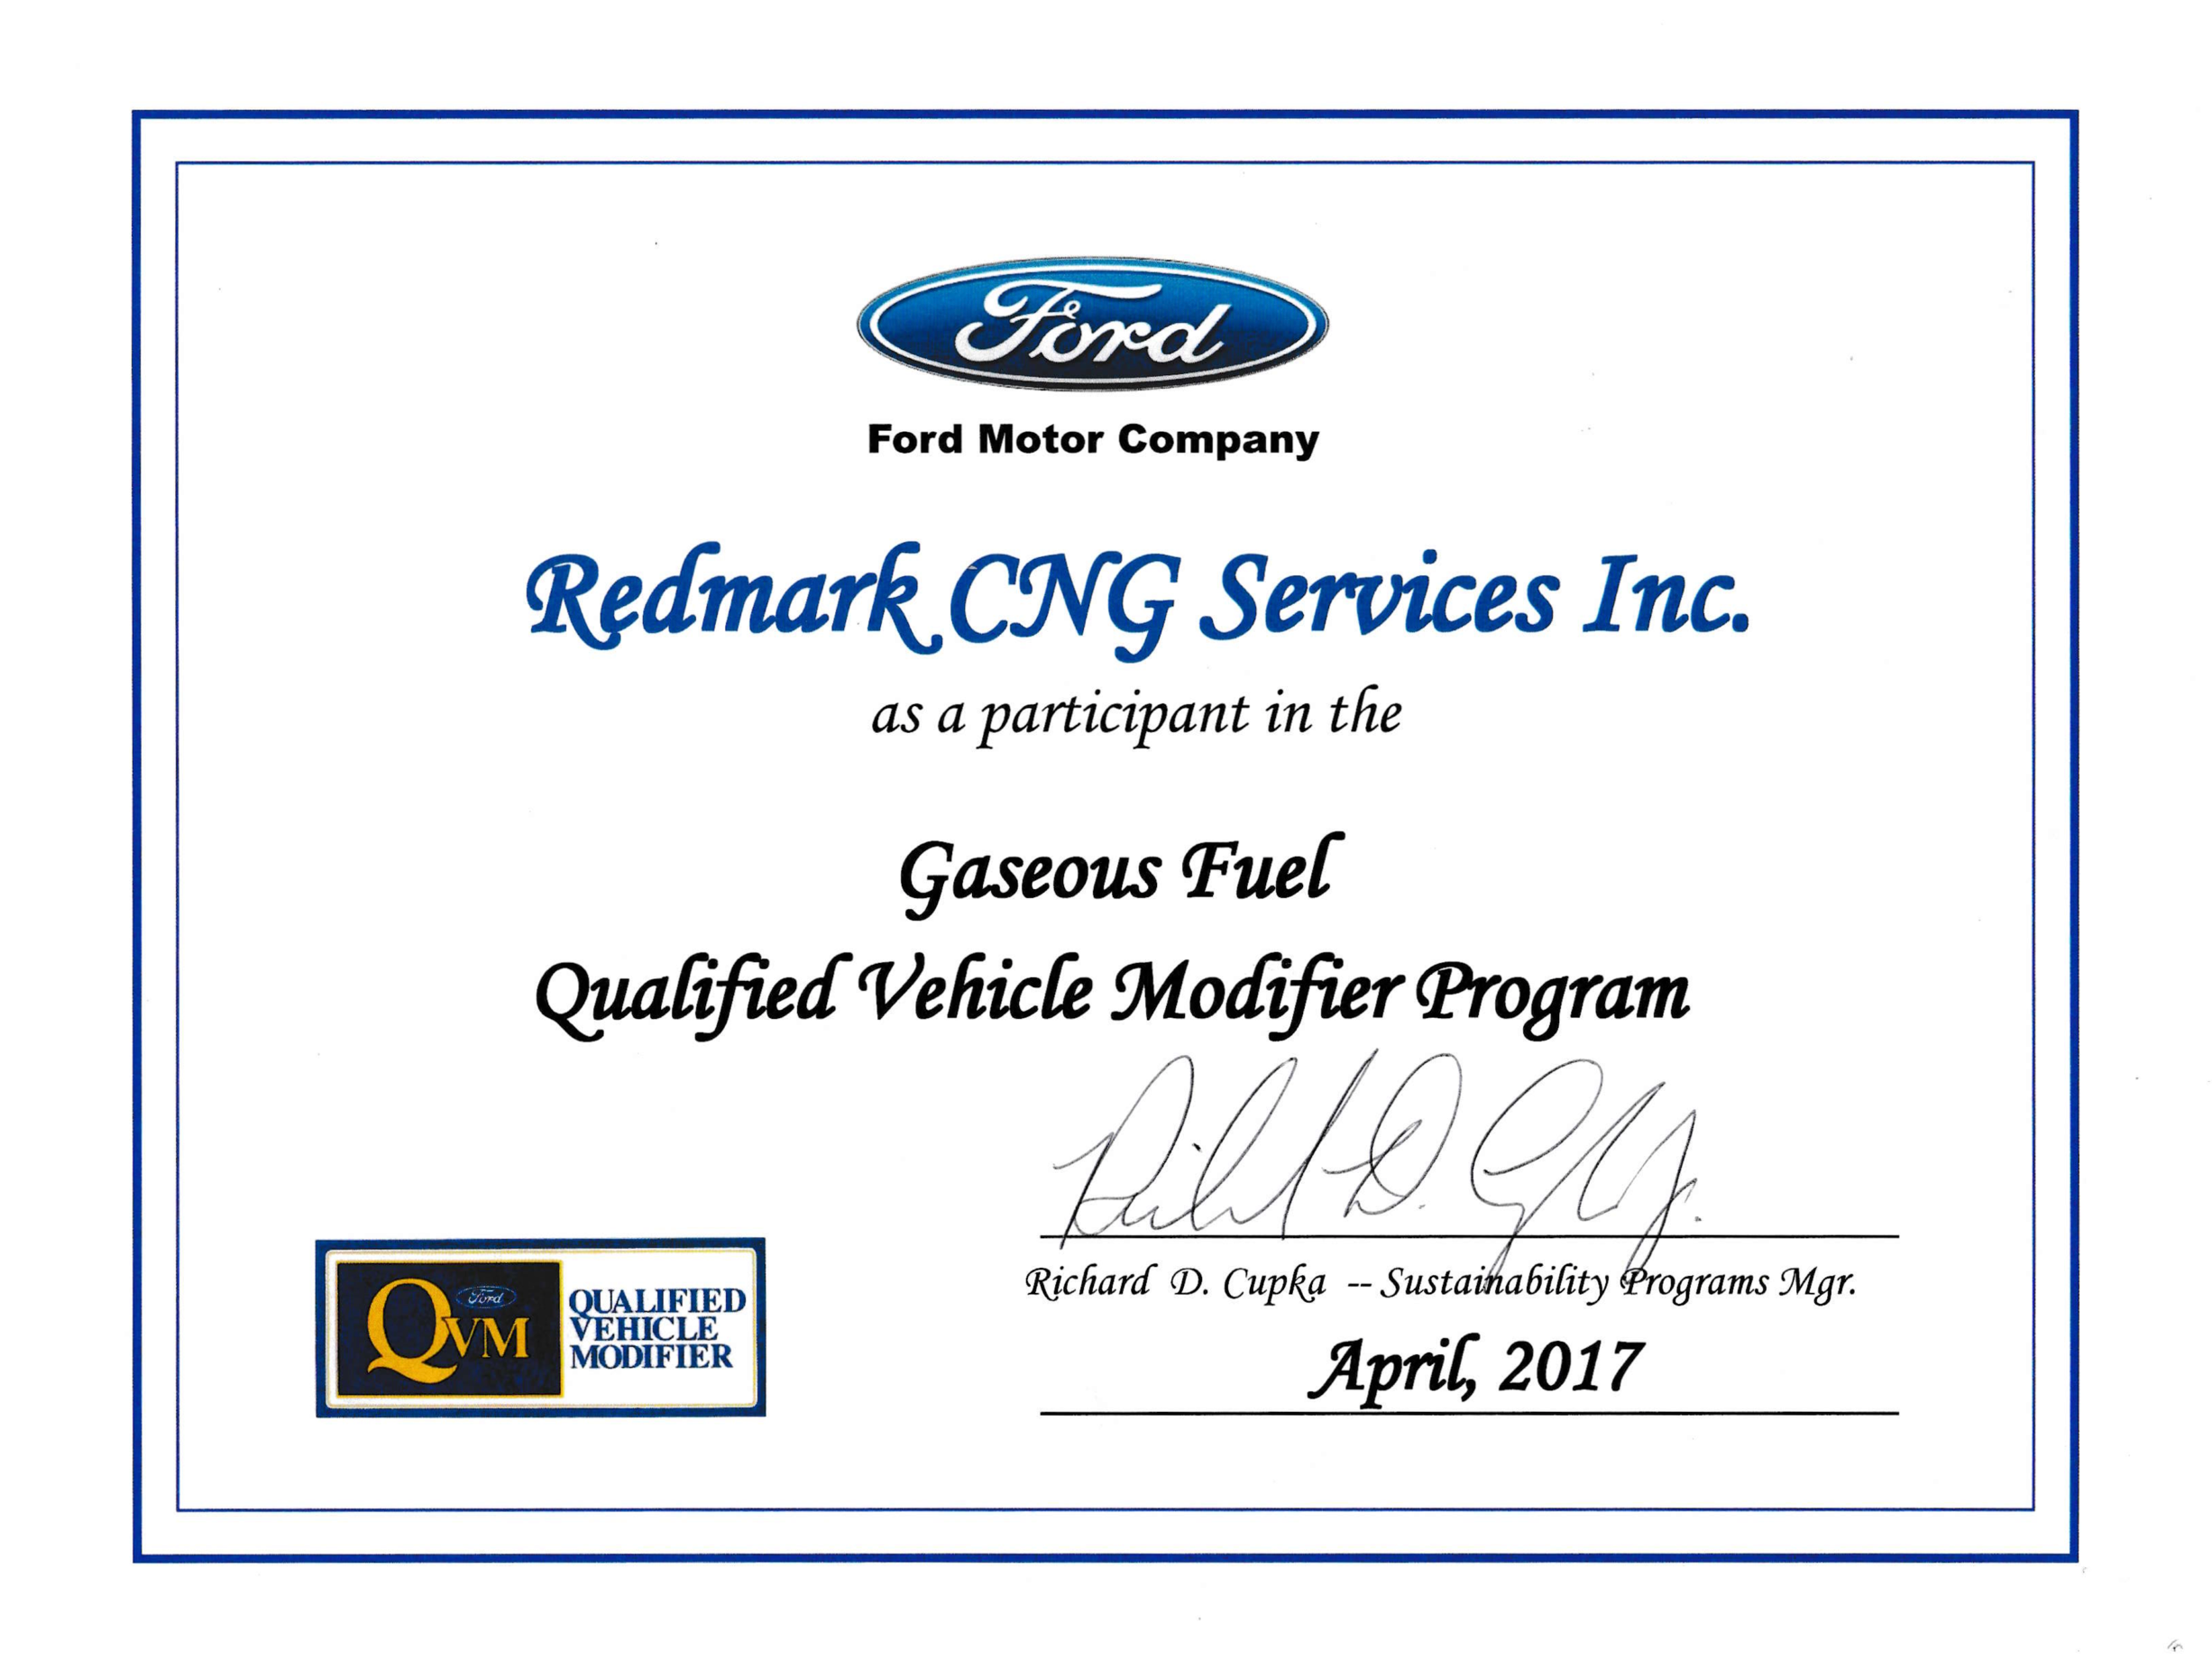 Redmark is an approved participant through the Ford Qualified Vehicle Modifier Program!